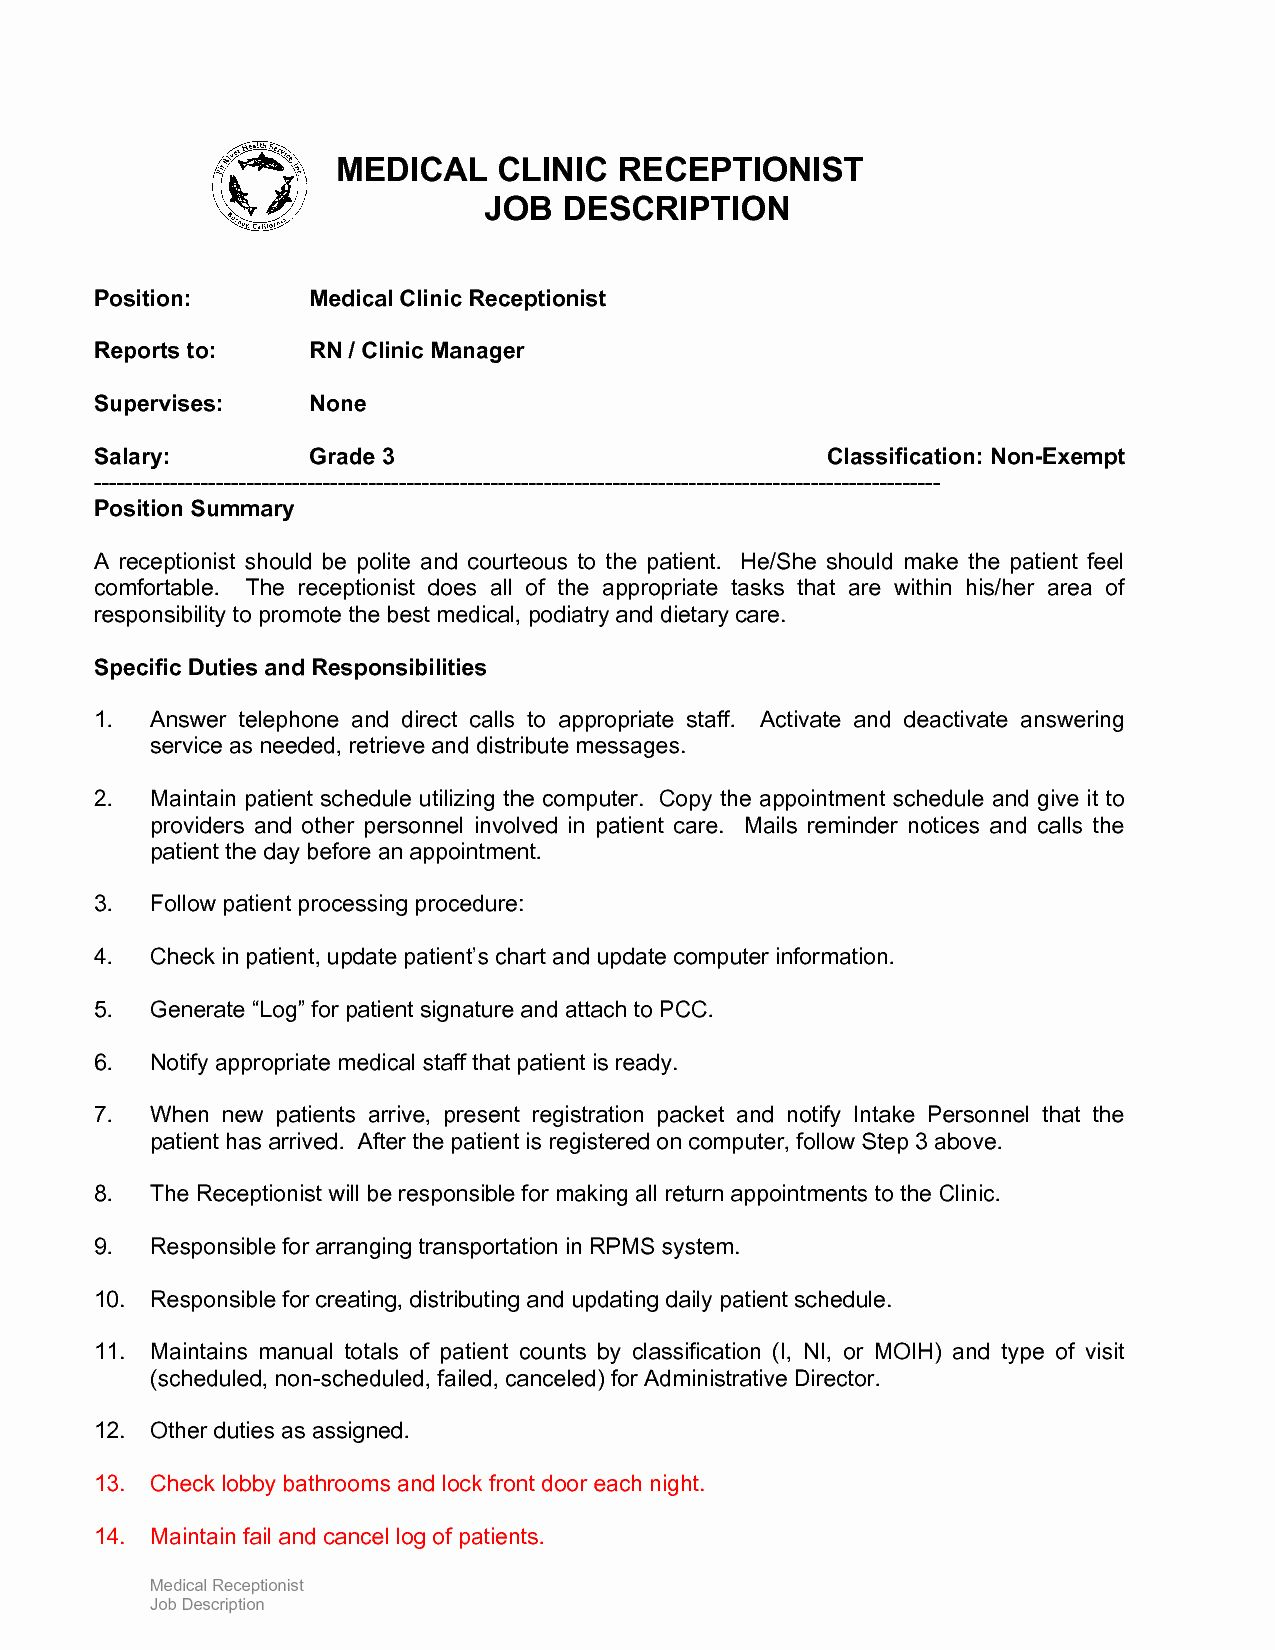 Hotel Front Desk Job Description Resume Lovely 10 Example Resume Receptionist Job Descriptio Receptionist Jobs Office Assistant Job Description Job Description